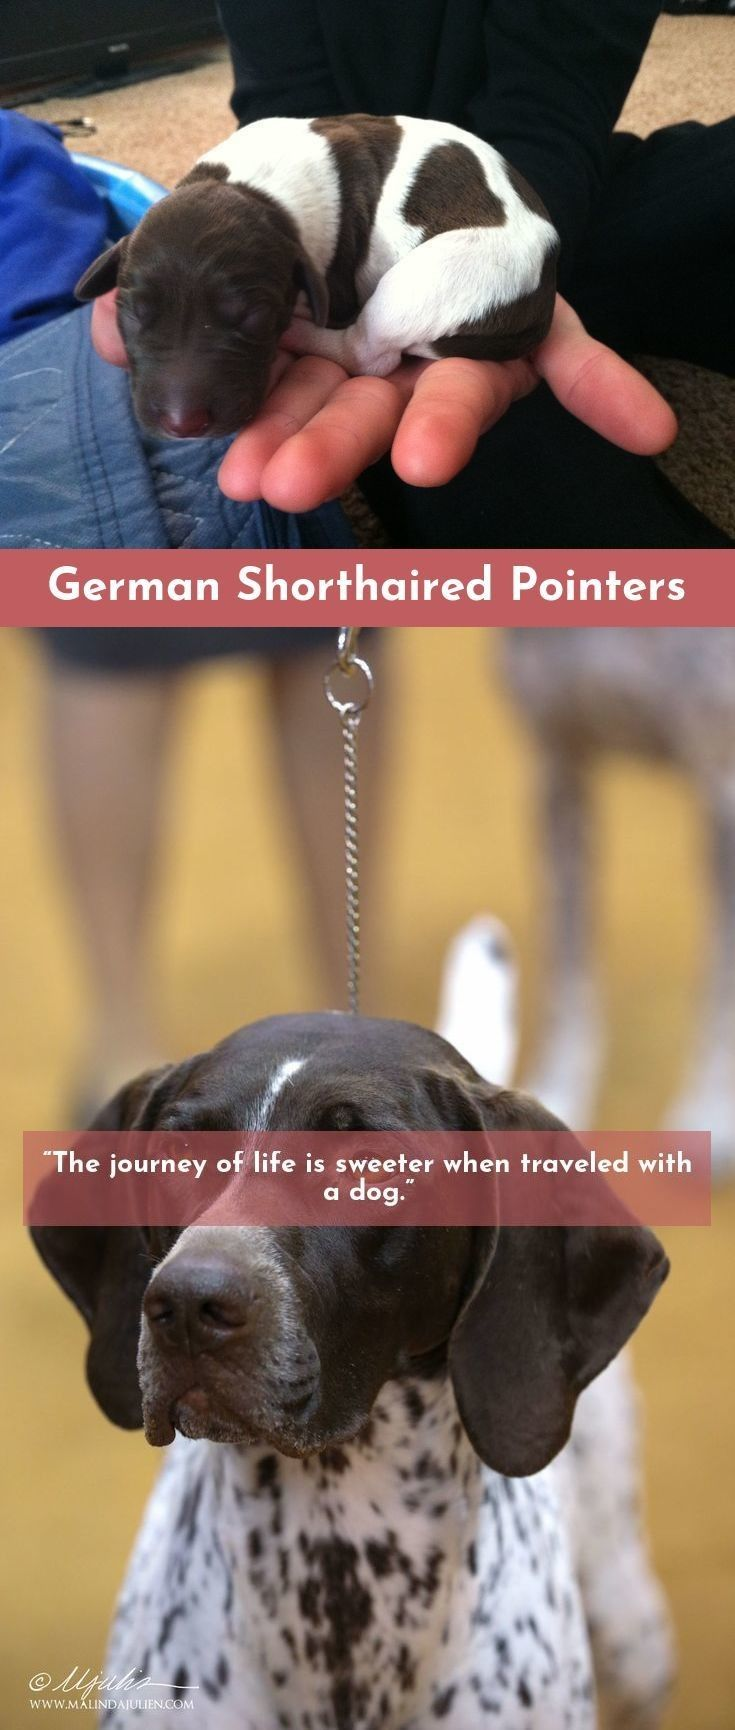 7 Best Dogs Breeds For People Allergies Dogs German Shorthaired